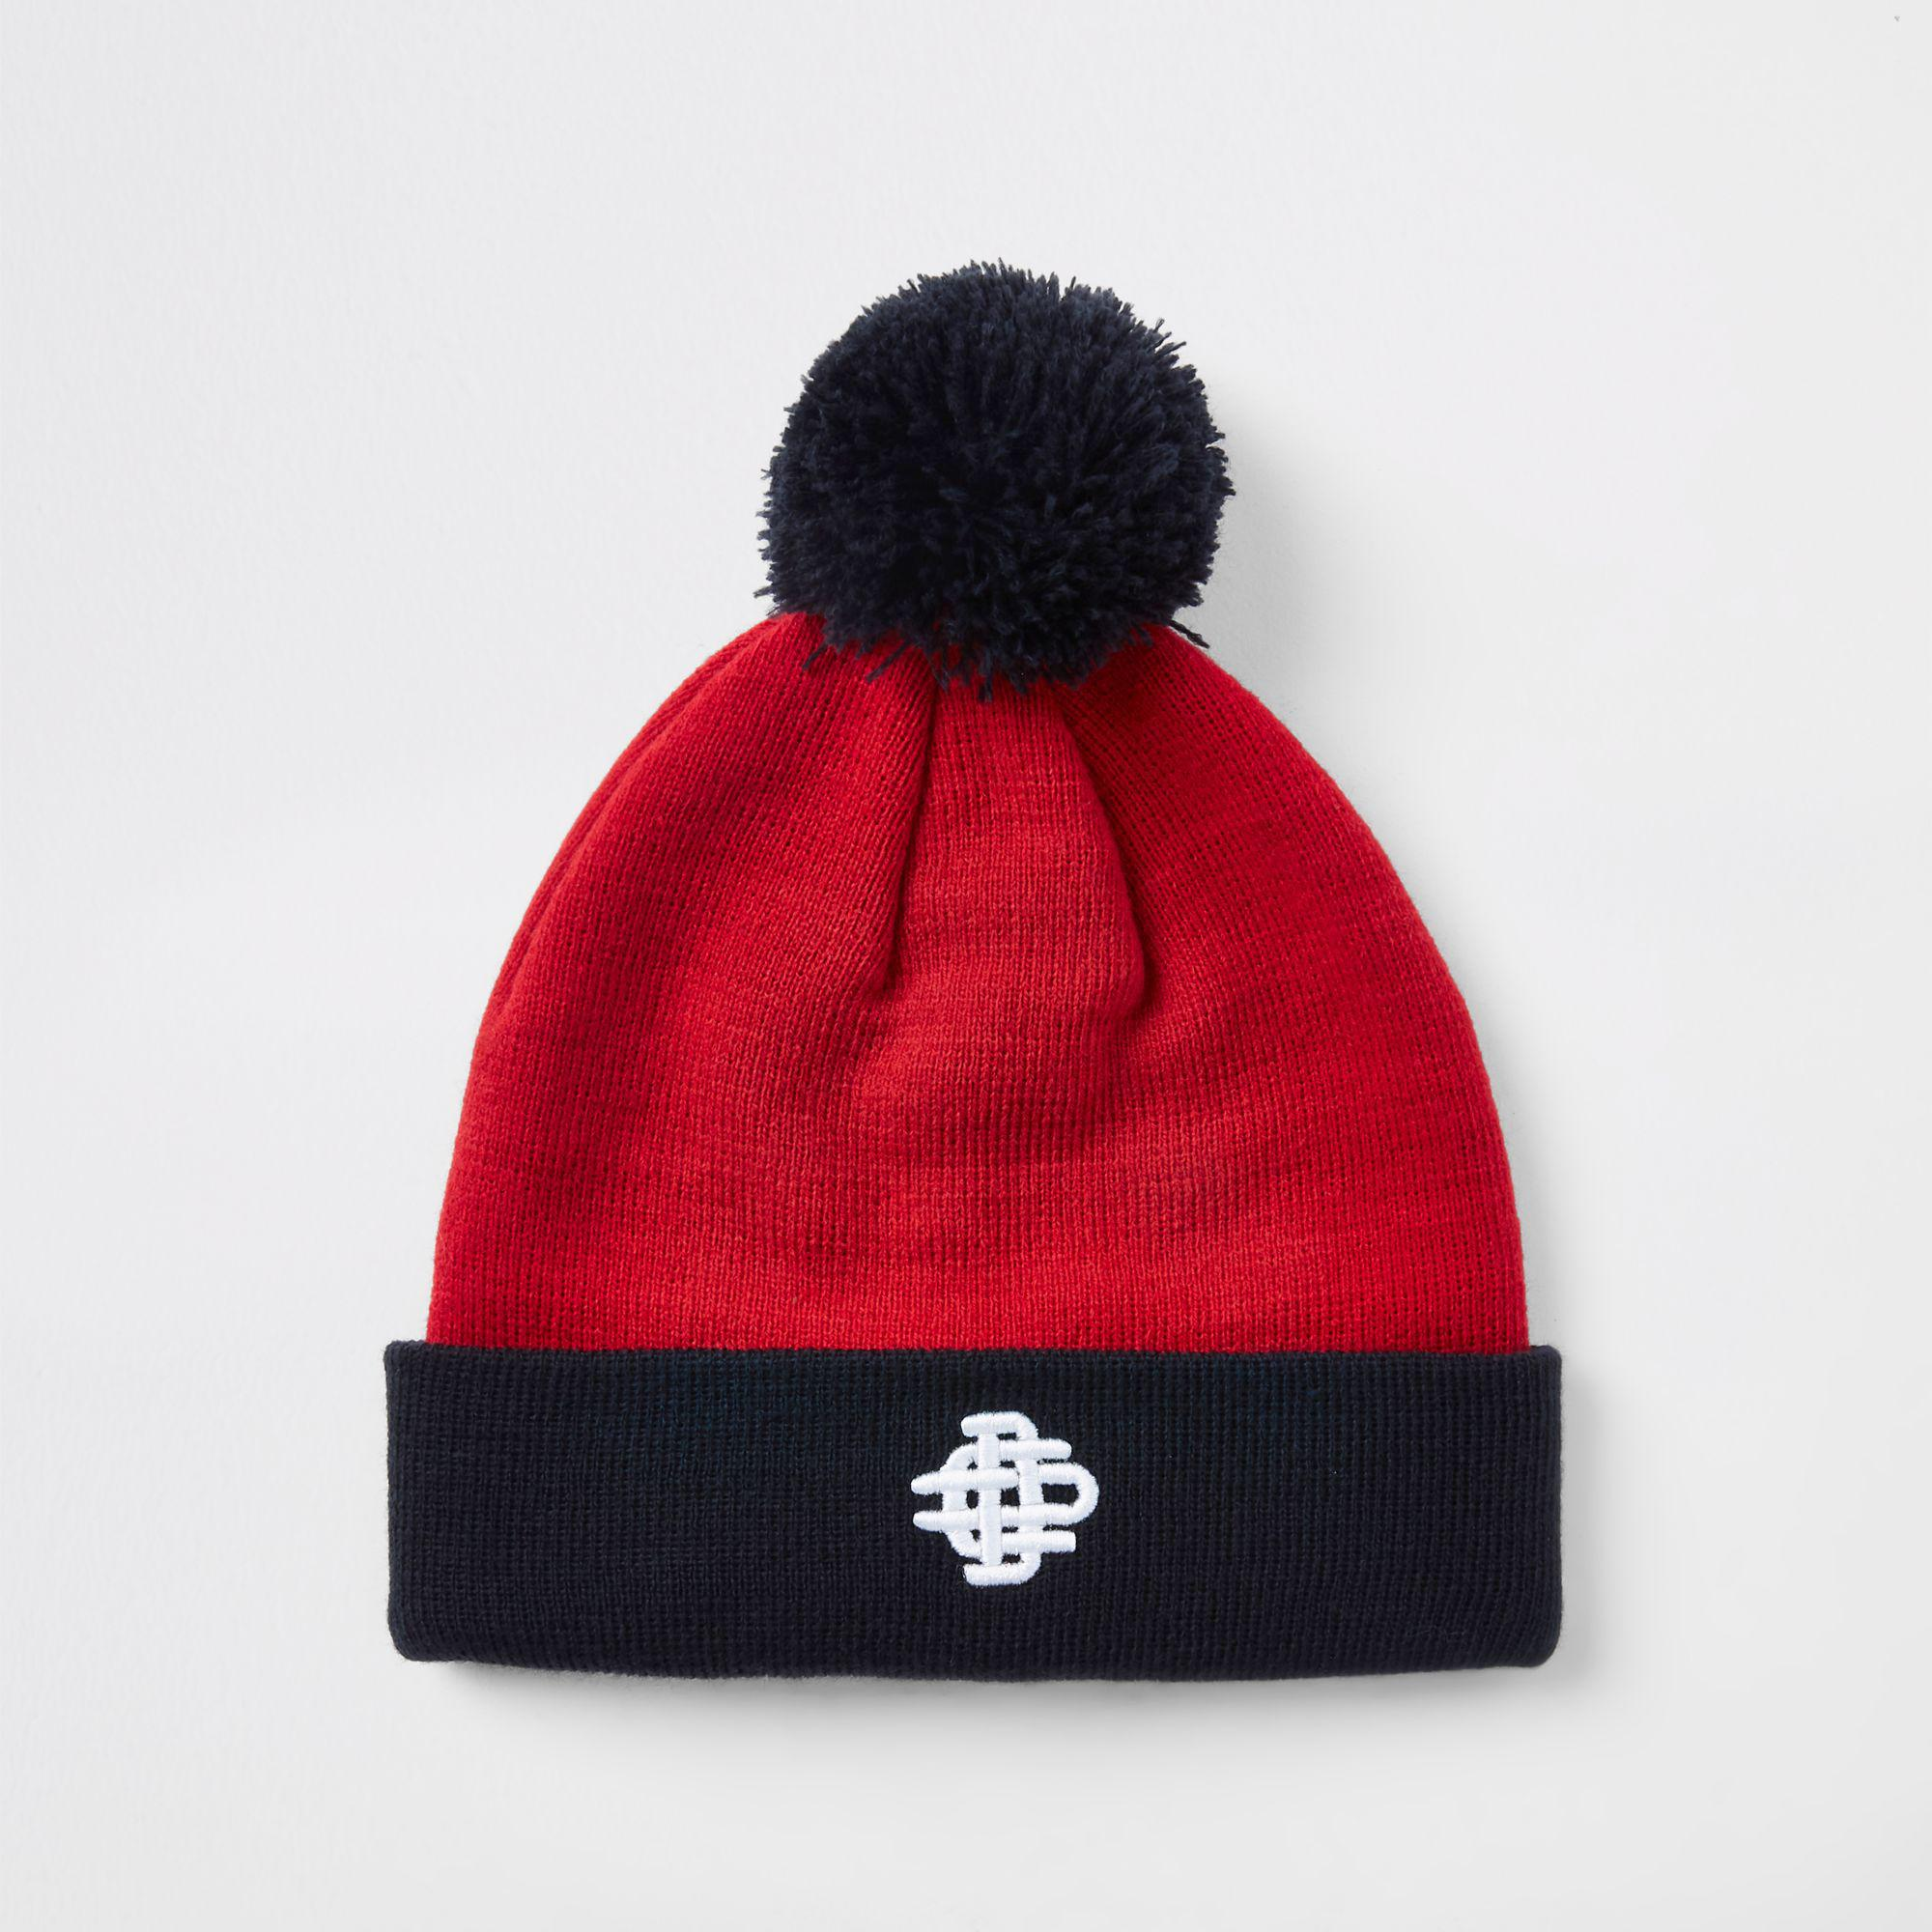 55dec3458fd Lyst - River Island Contrast Bobble Beanie Hat in Red for Men